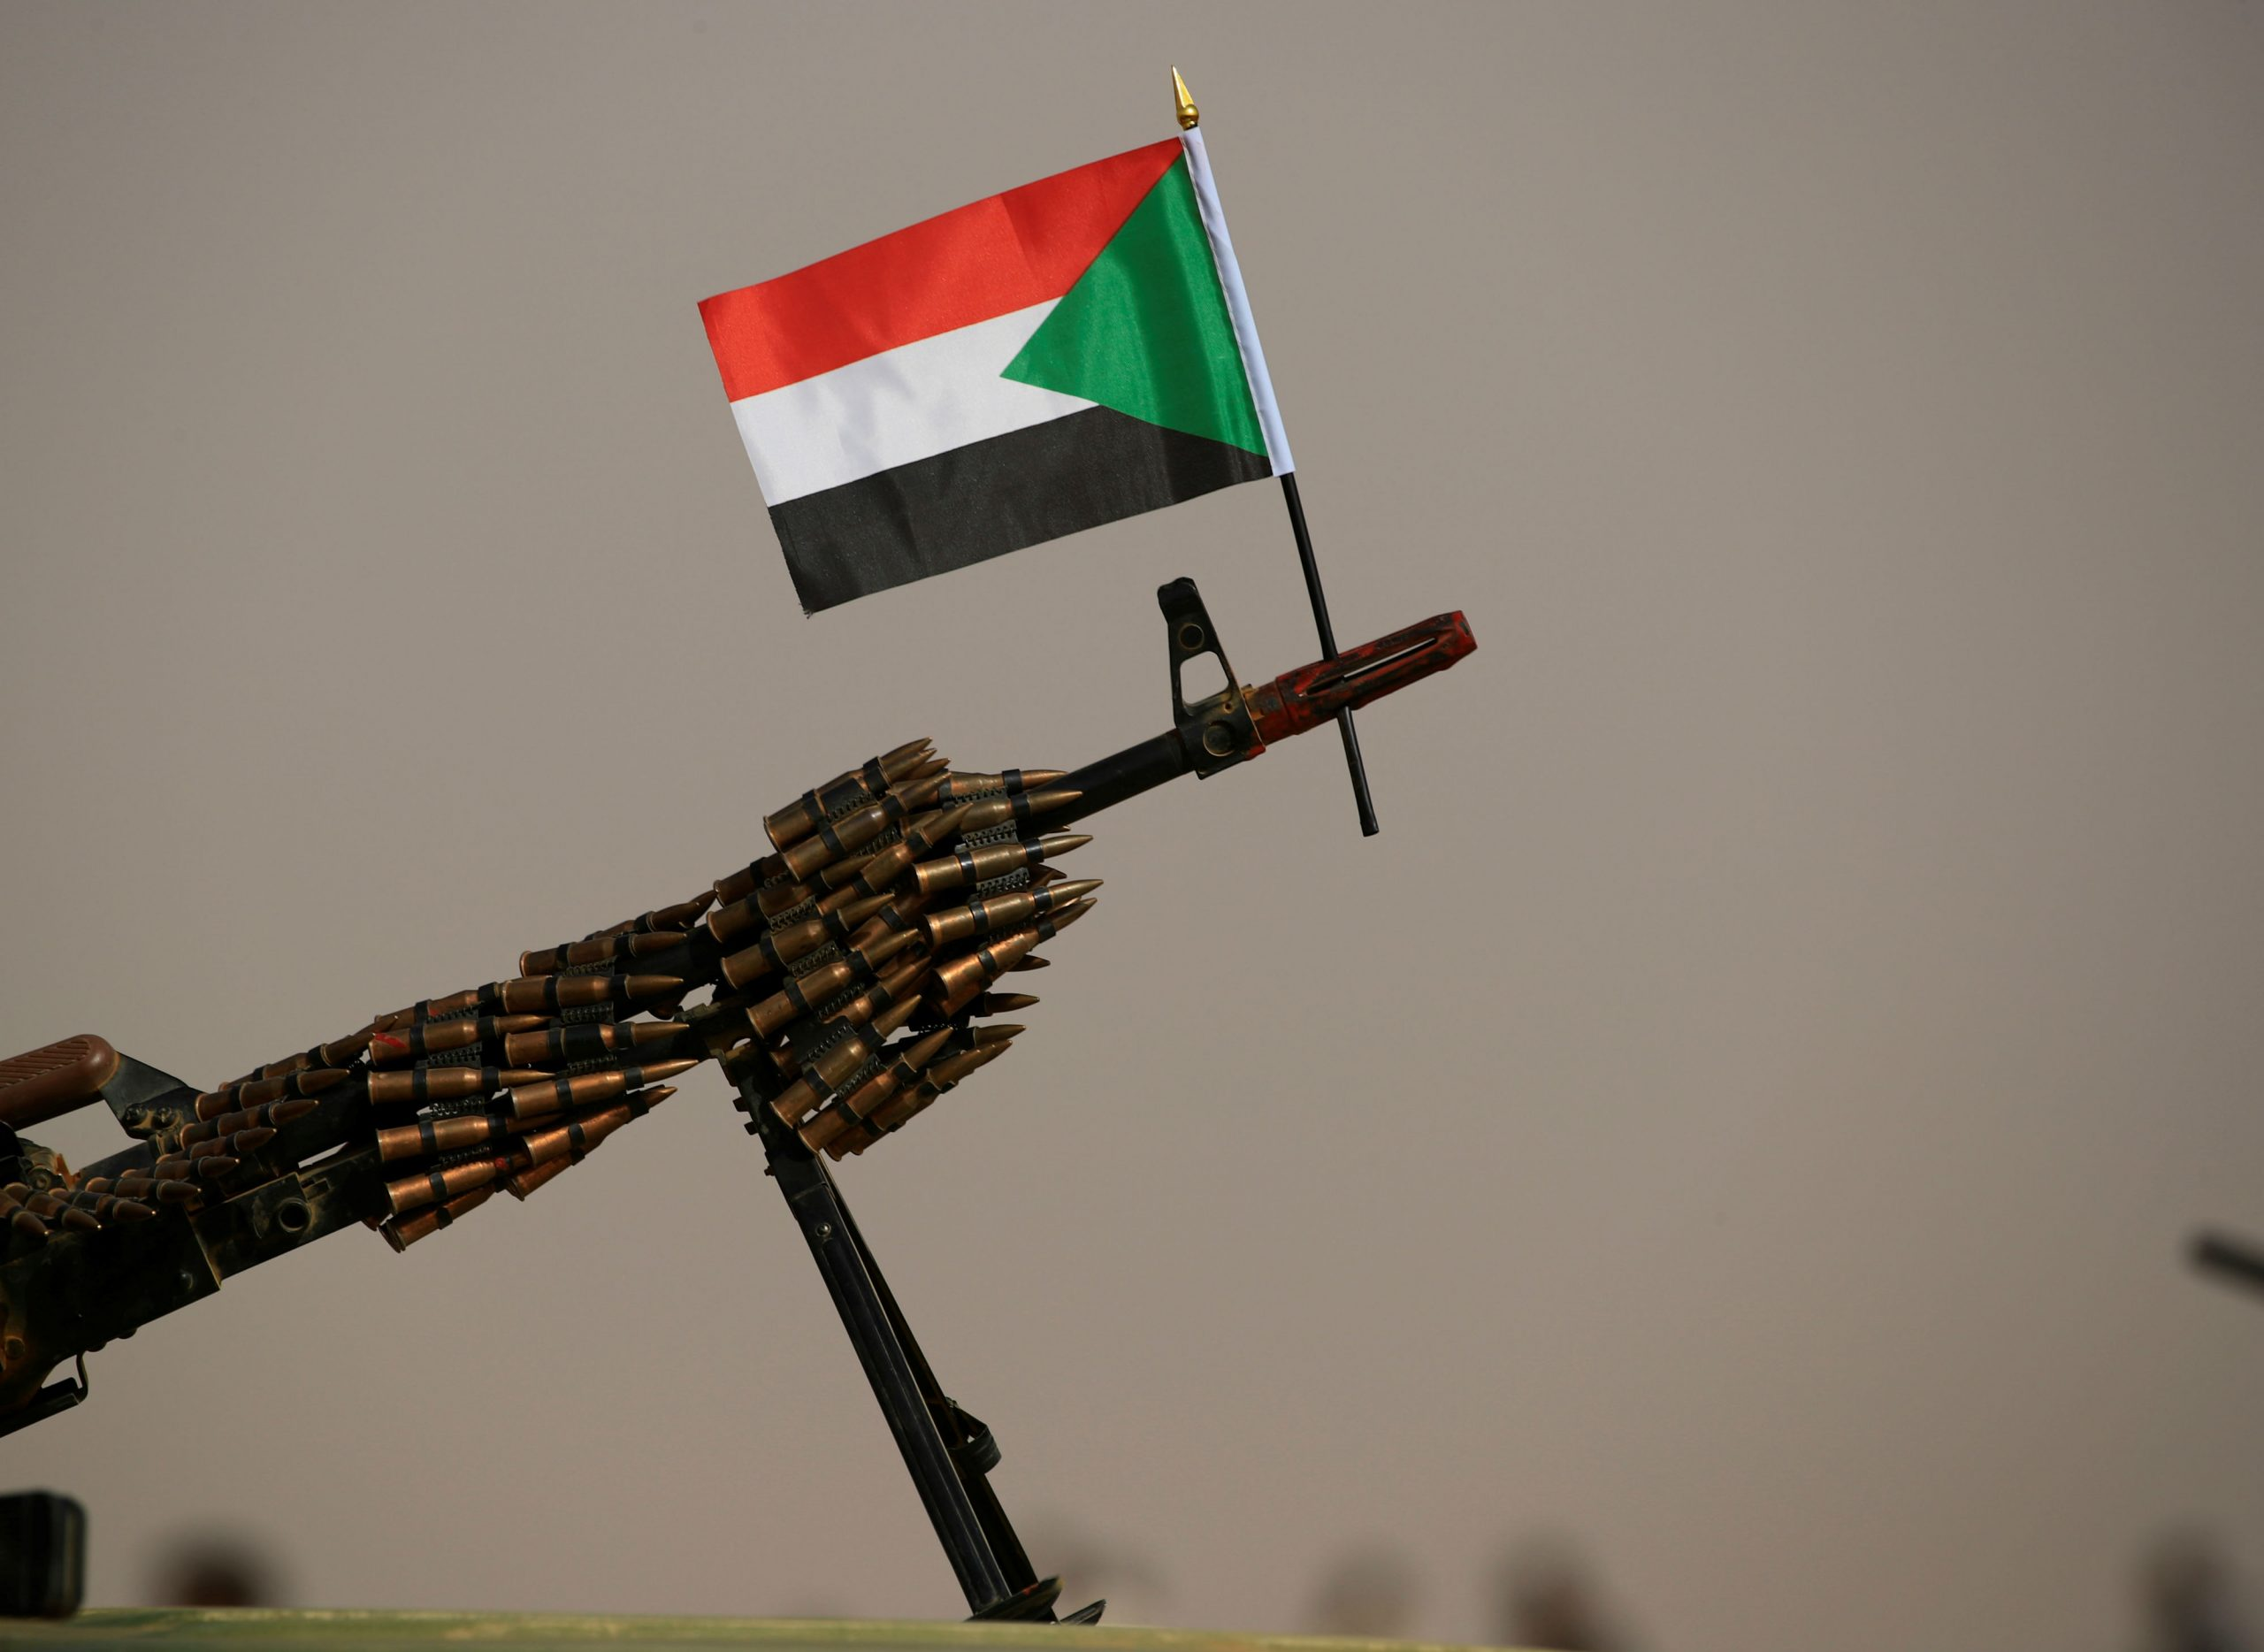 Sudan Increases Troop Presence On Ethiopia Border, Clashes Happening Regularly